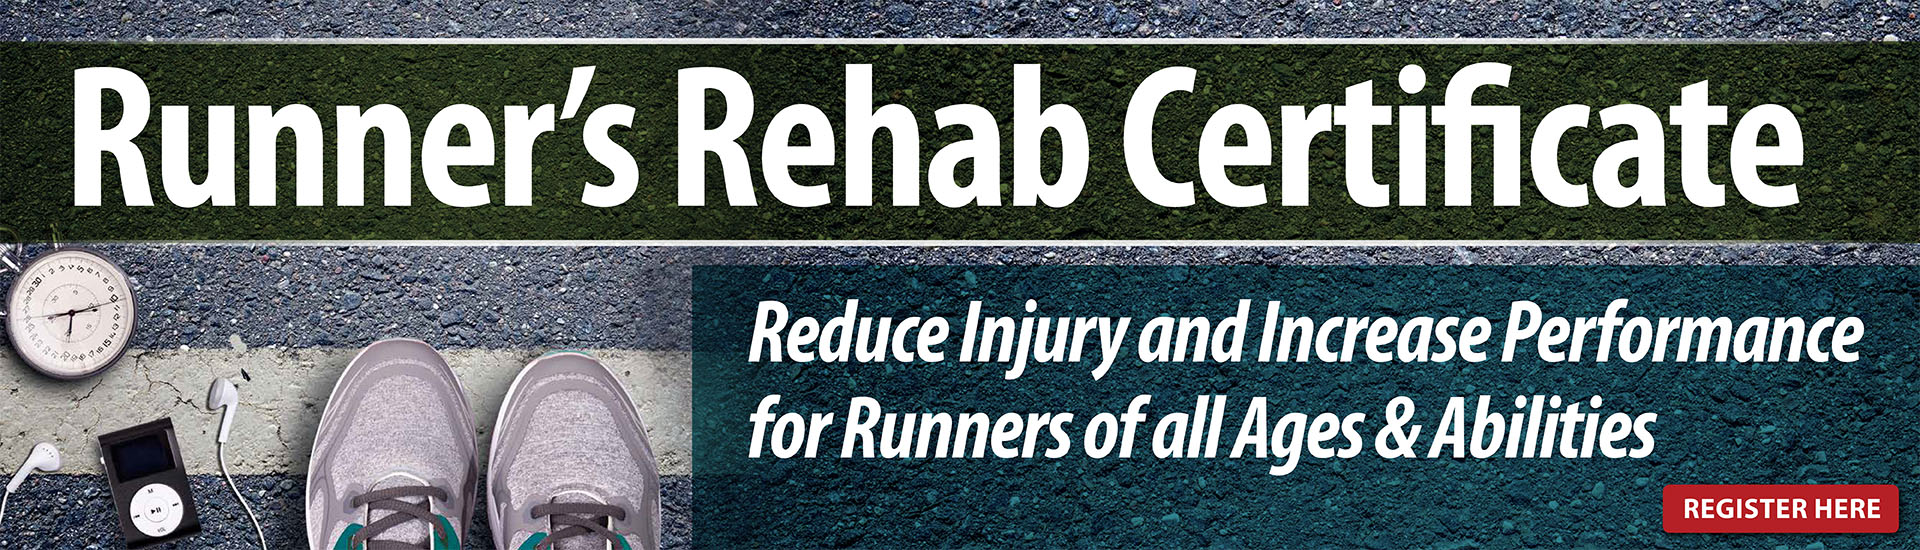 Runner's Rehab Certificate: Reduce Injury and Increase Performance for Runners of all Ages & Abilities